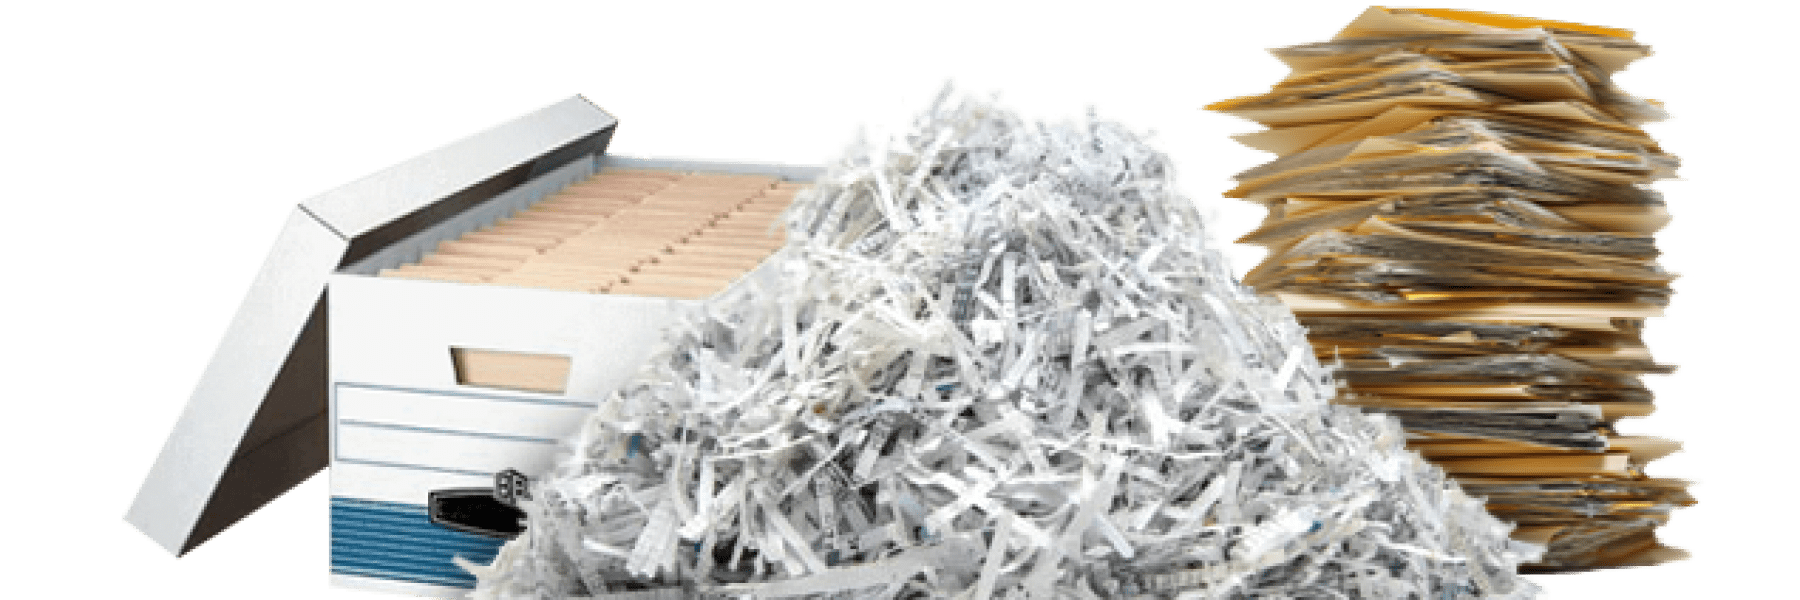 Off-Site Document Shredding Service